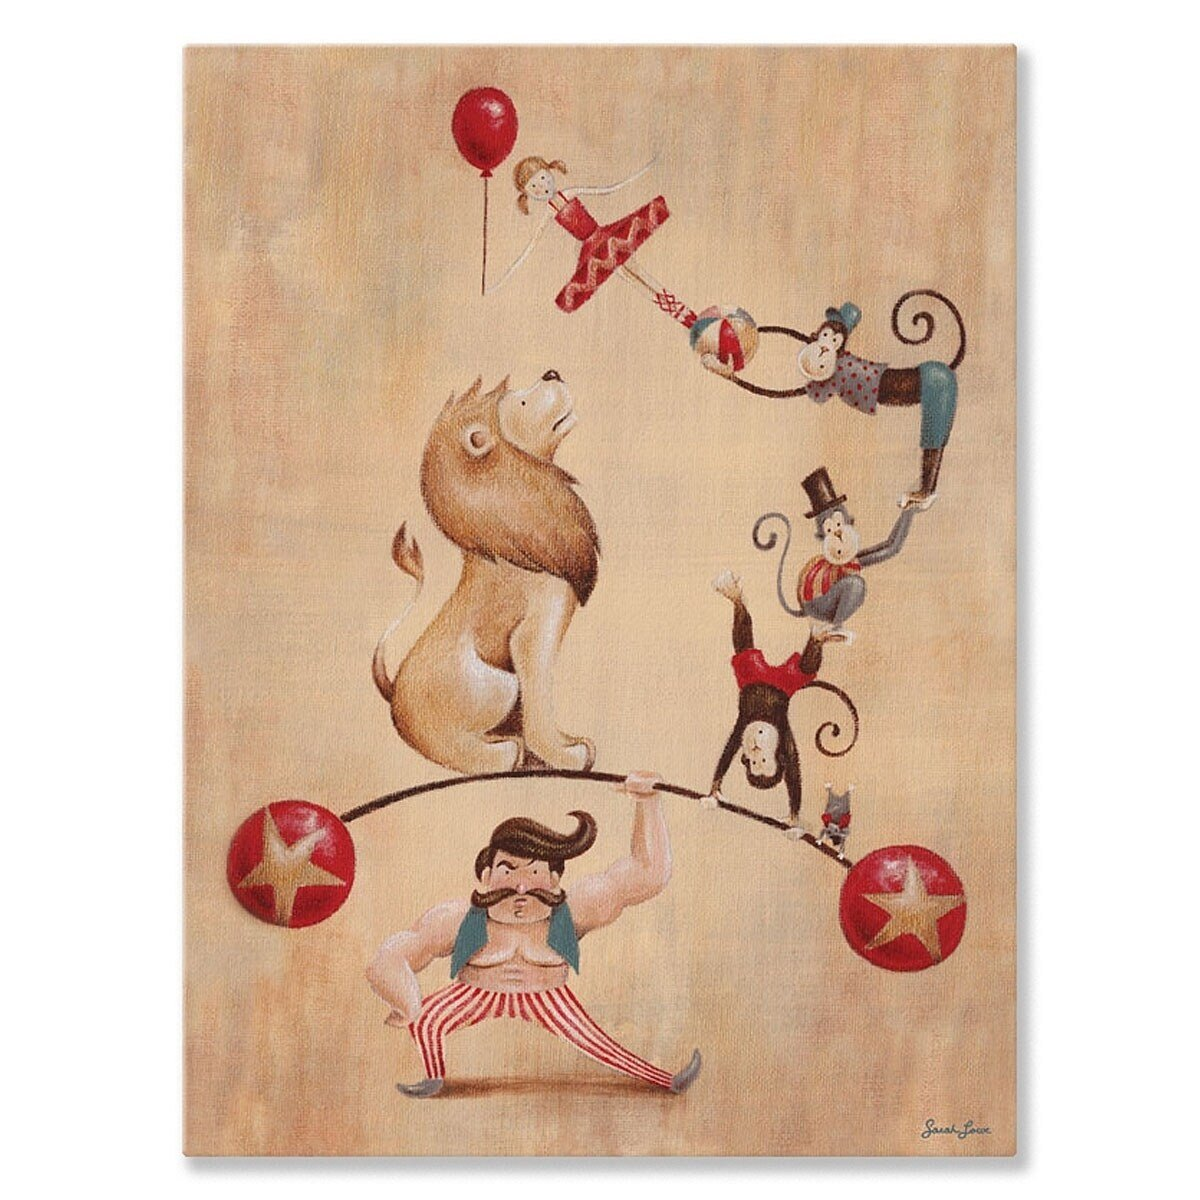 Oopsy Daisy 'Vintage Circus Strong Man' by Sarah Lowe Canvas Wall Art - 10 x 14!